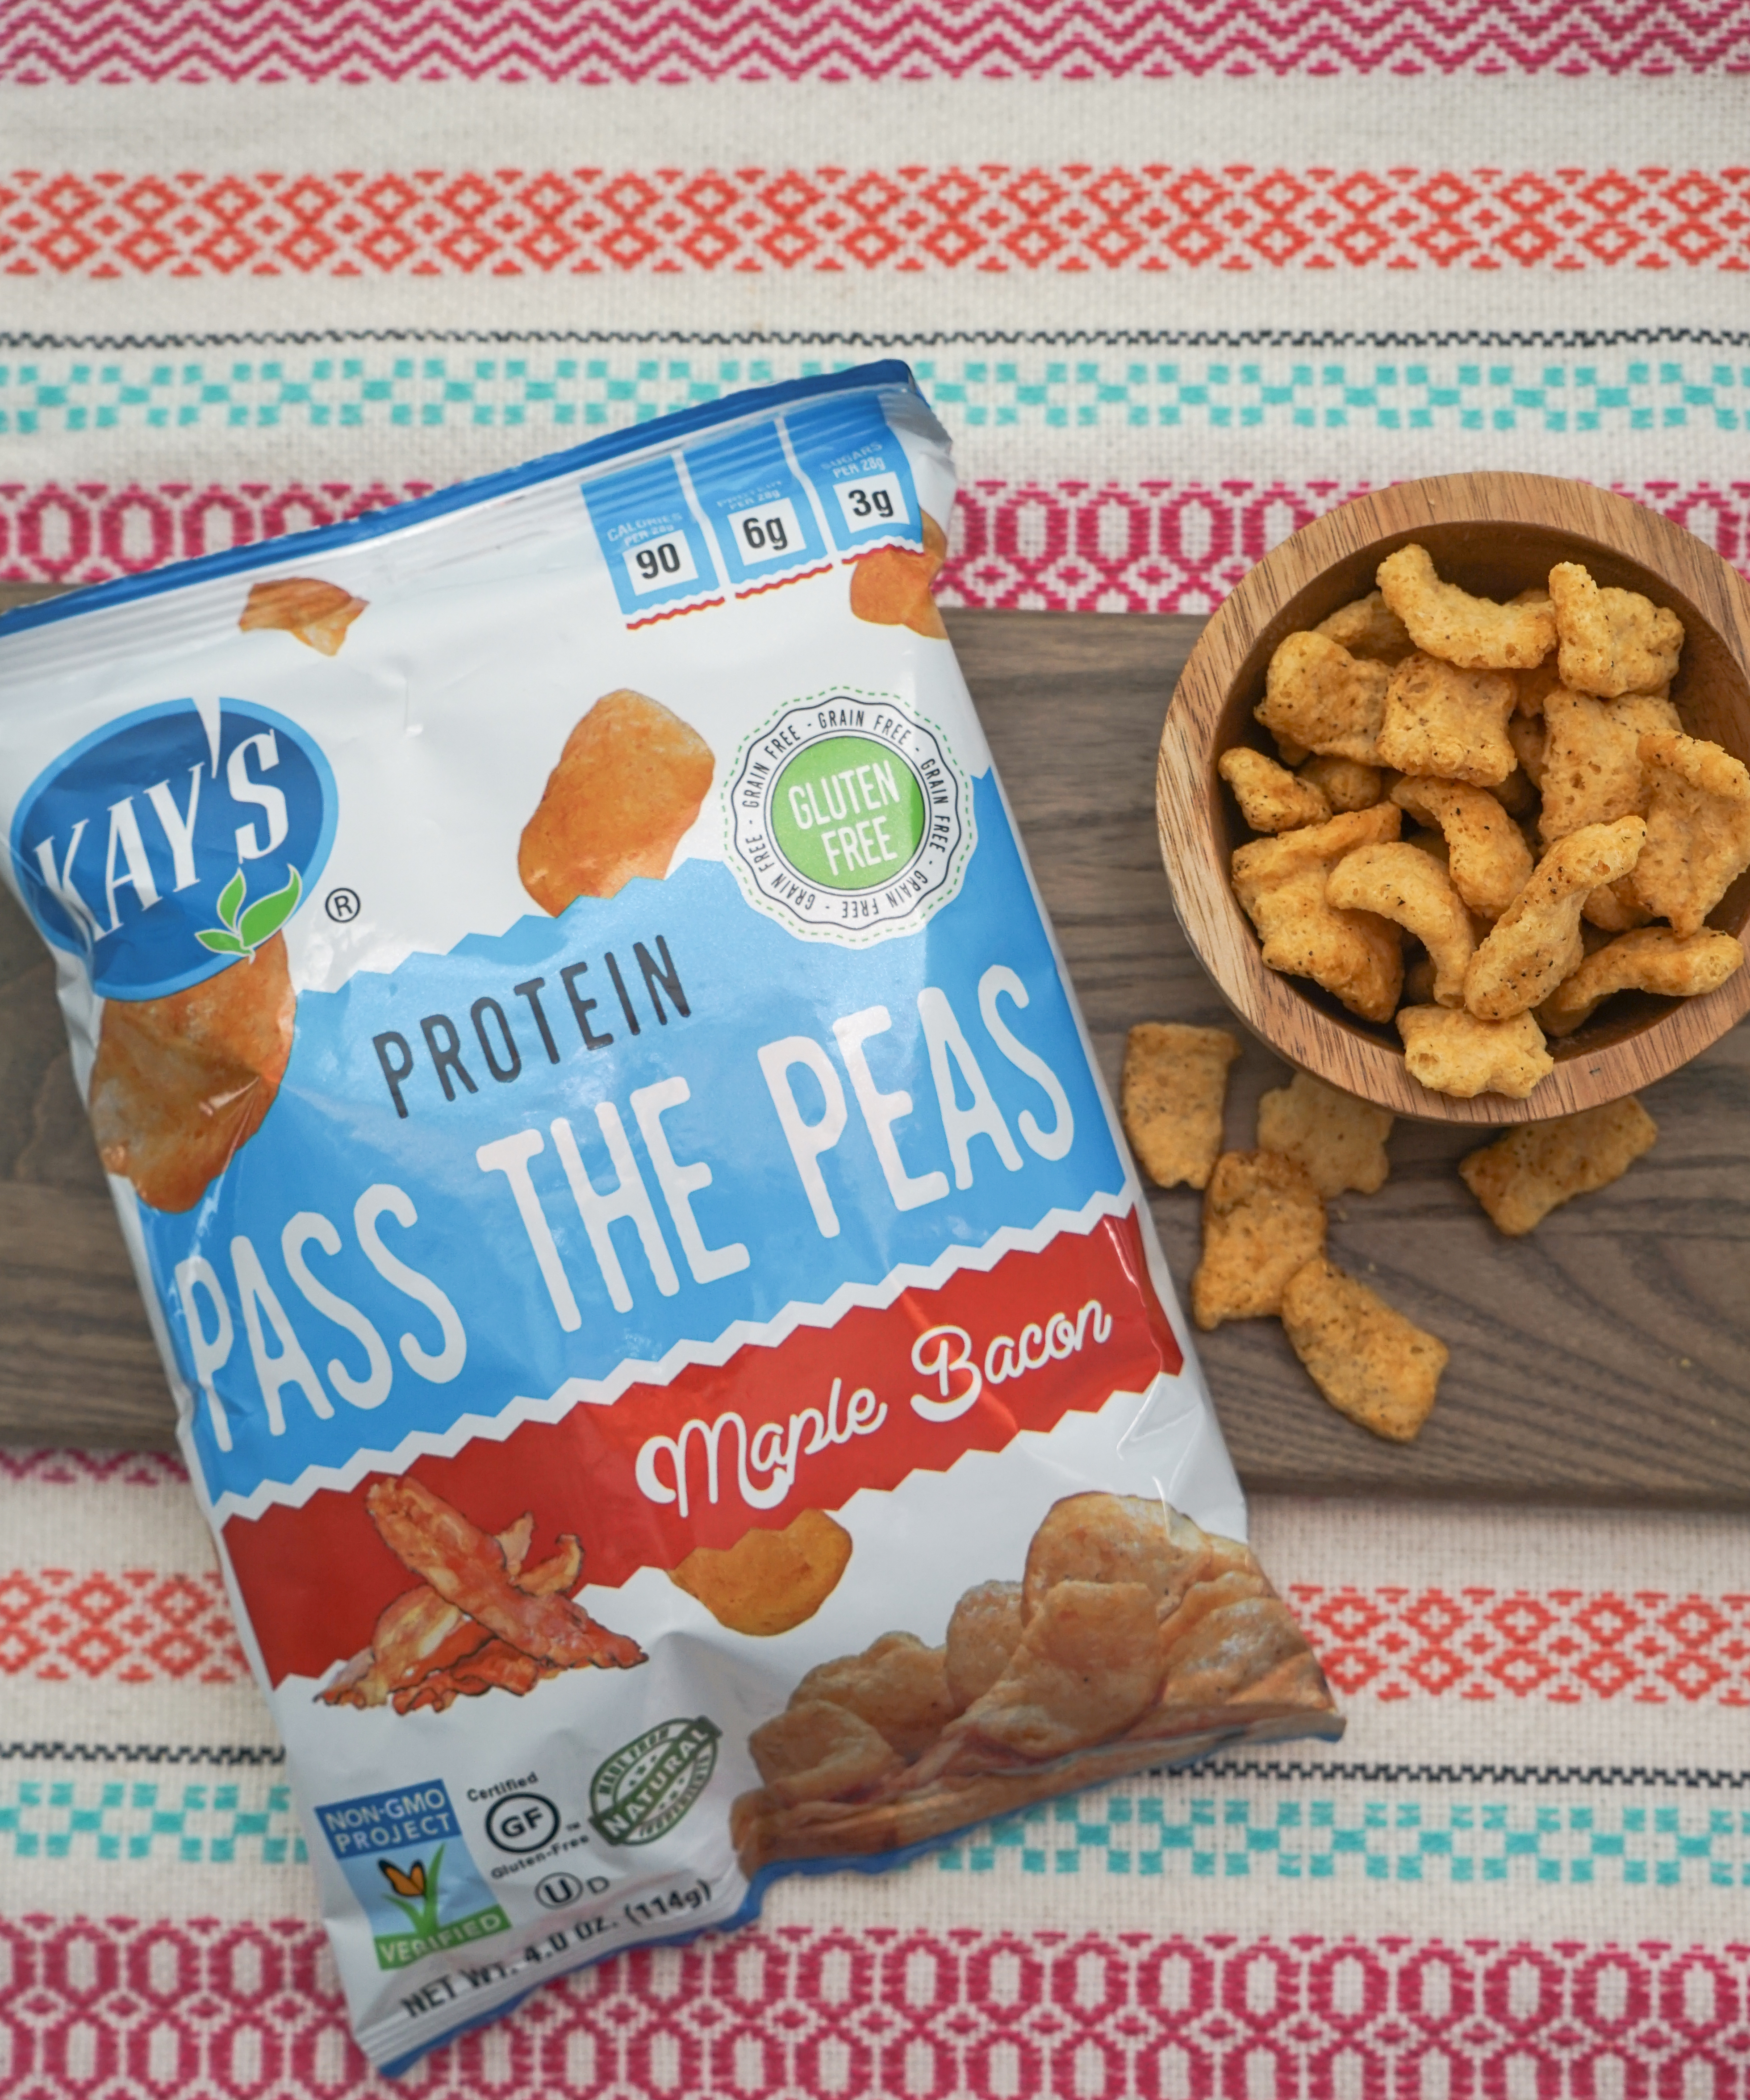 4oz bag of Kay's Naturals Pass the Peas in Maple Bacon